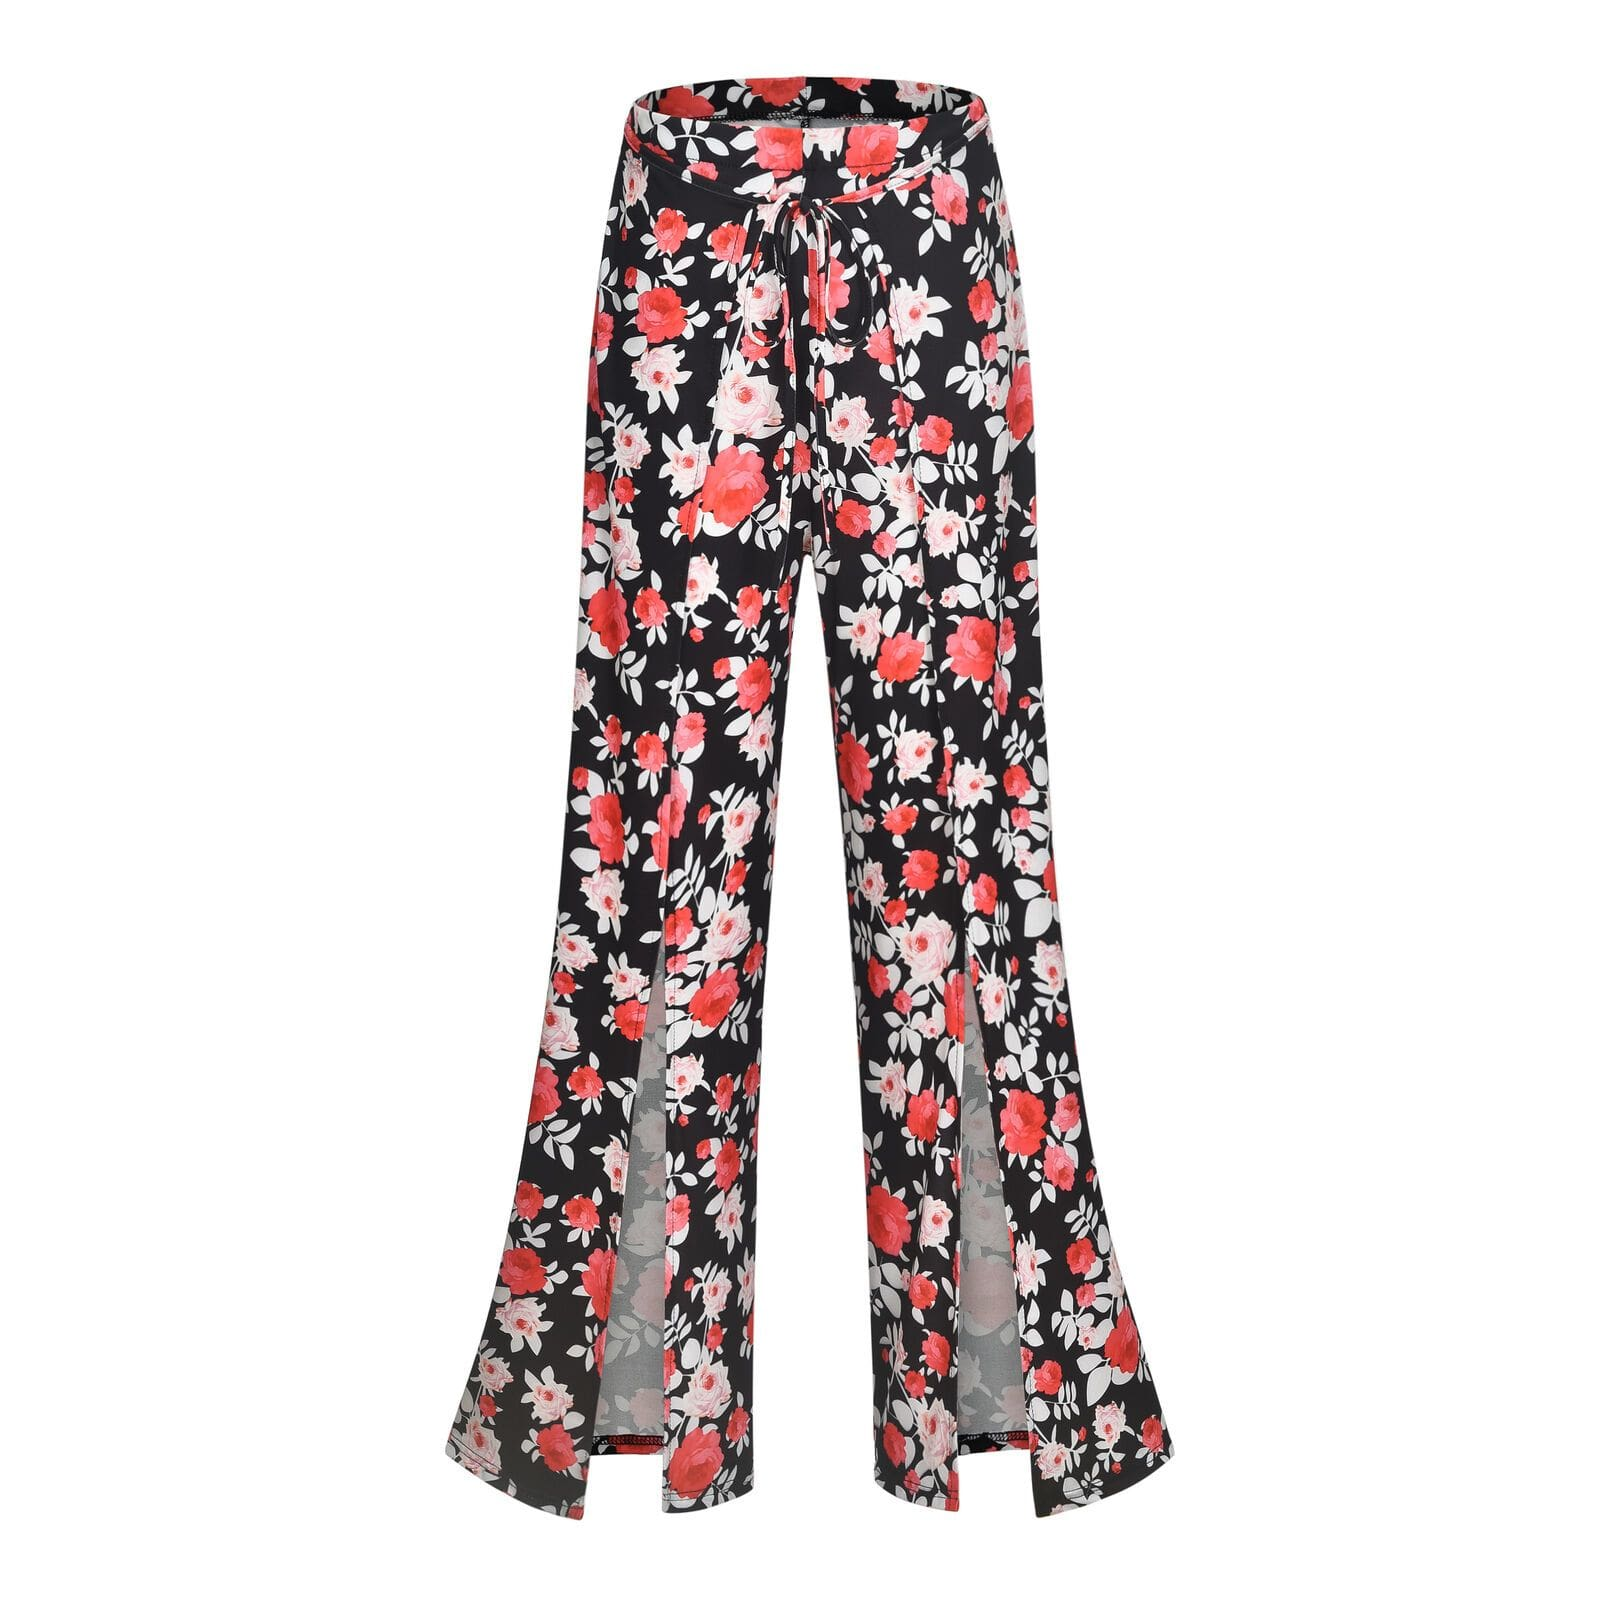 The Best 2019 New Fashion Women Boho Floral Flare Long Pants Palazzo Baggy Wide Leg Summer Casual Trousers Loose Culottes Online - Source Silk